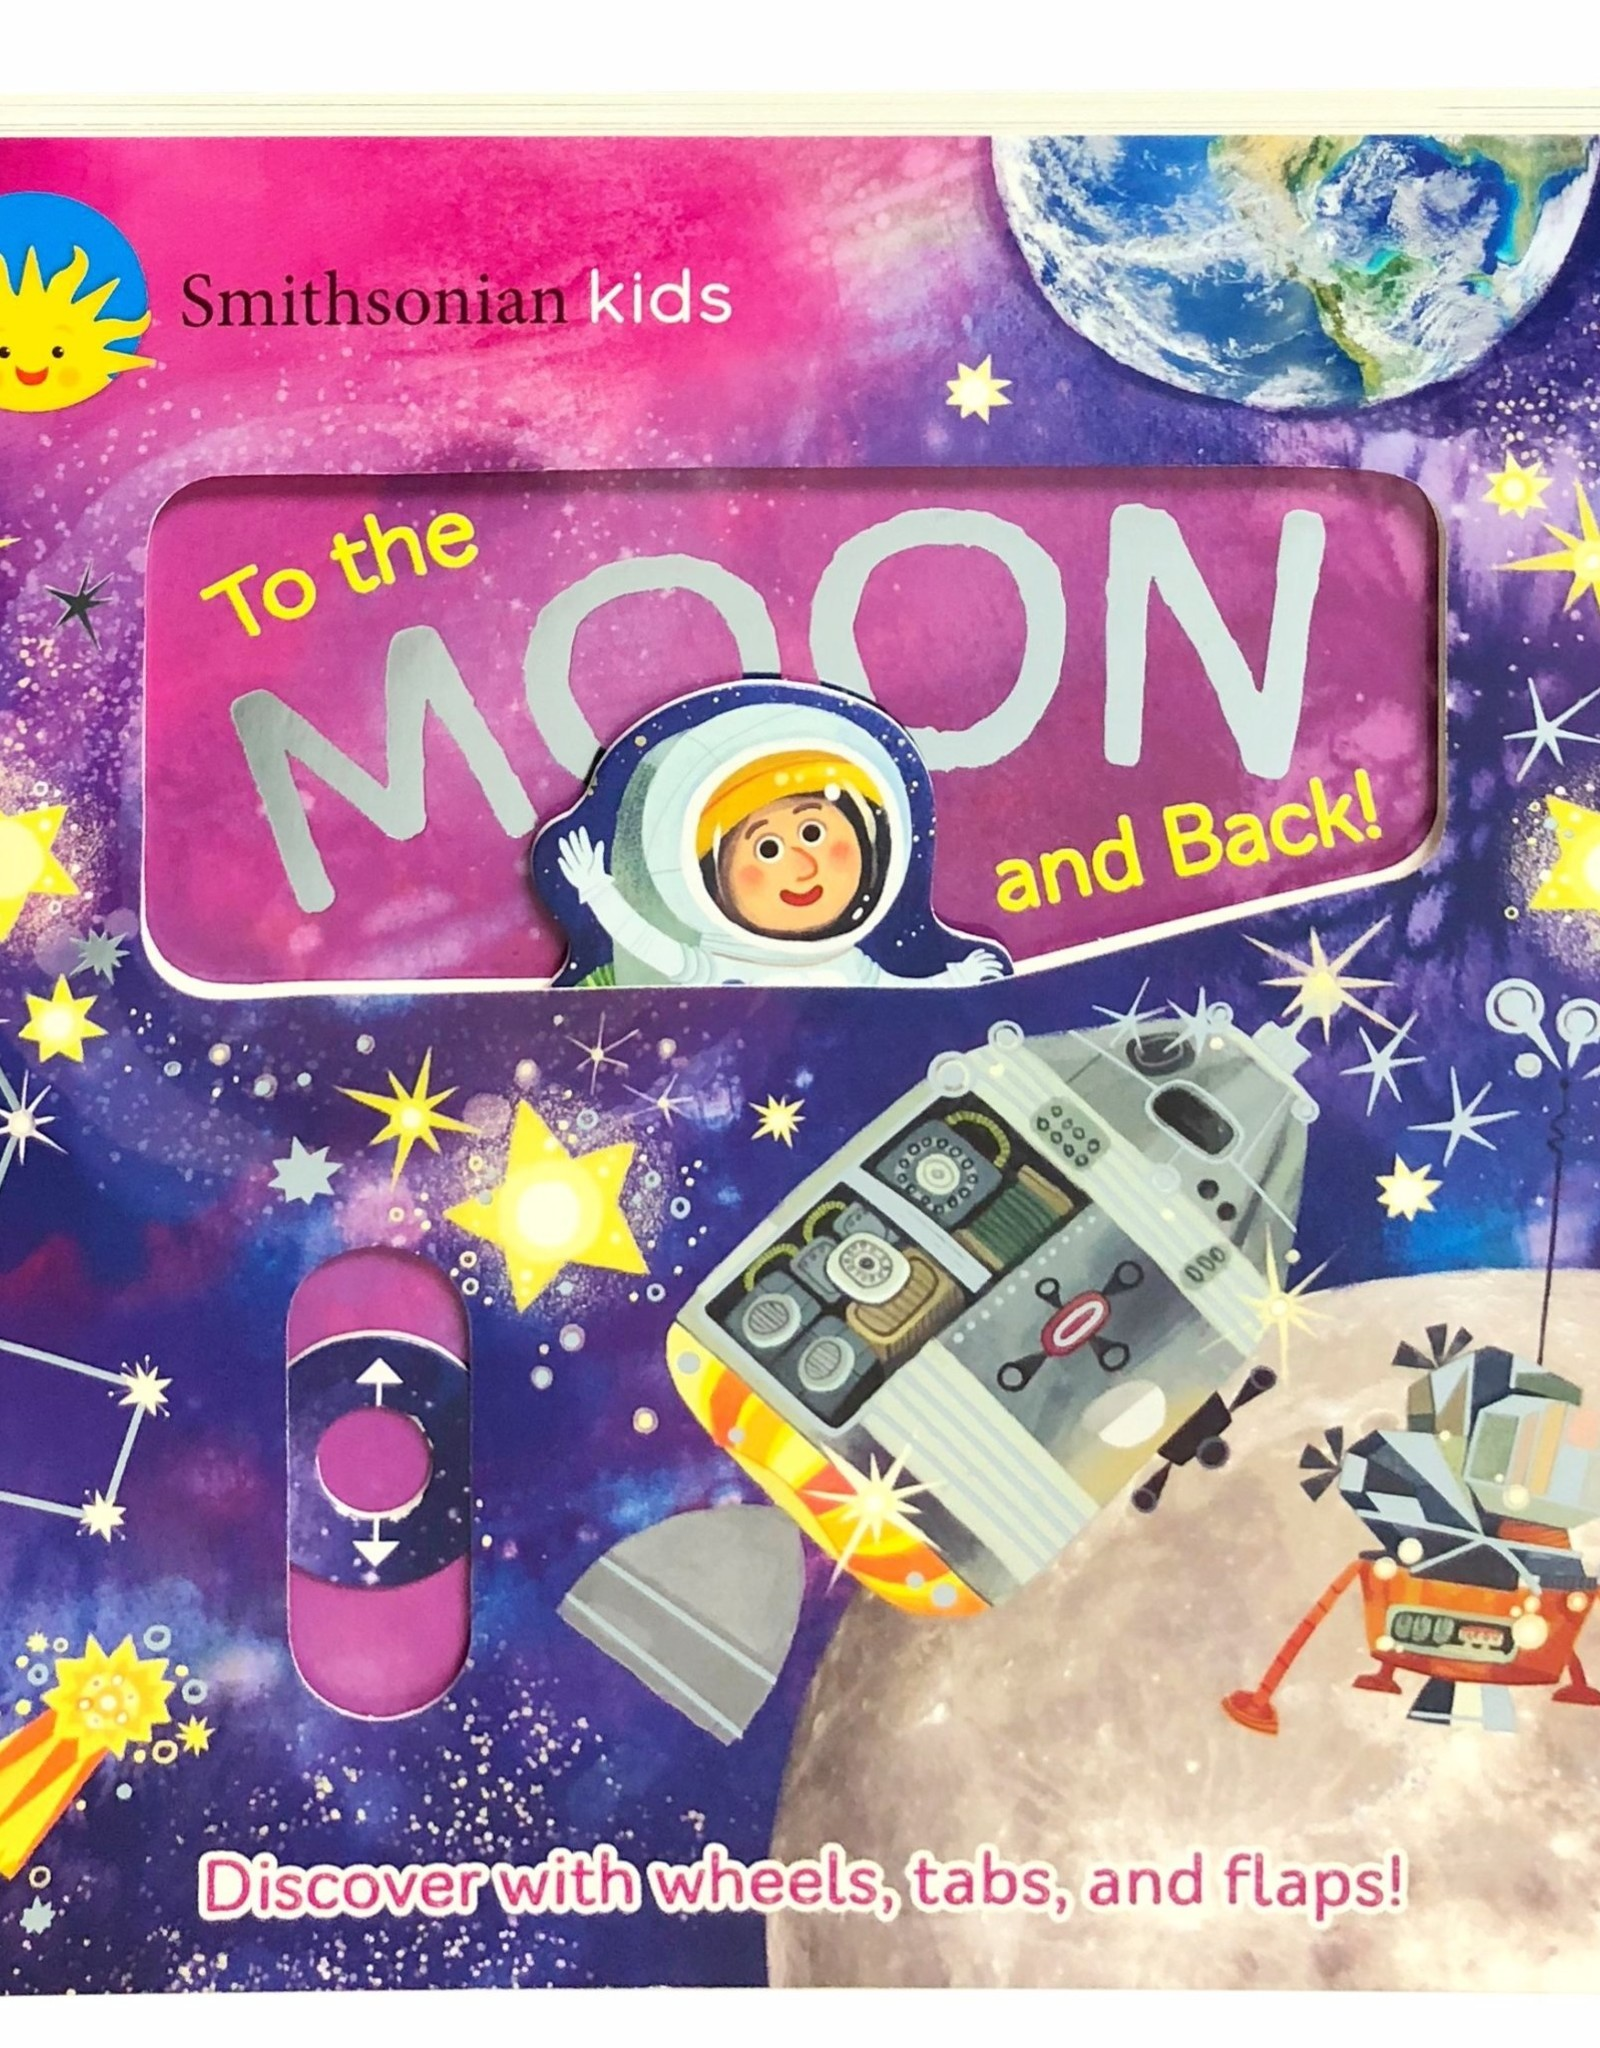 Cottage Door Press To the Moon and Back! Book